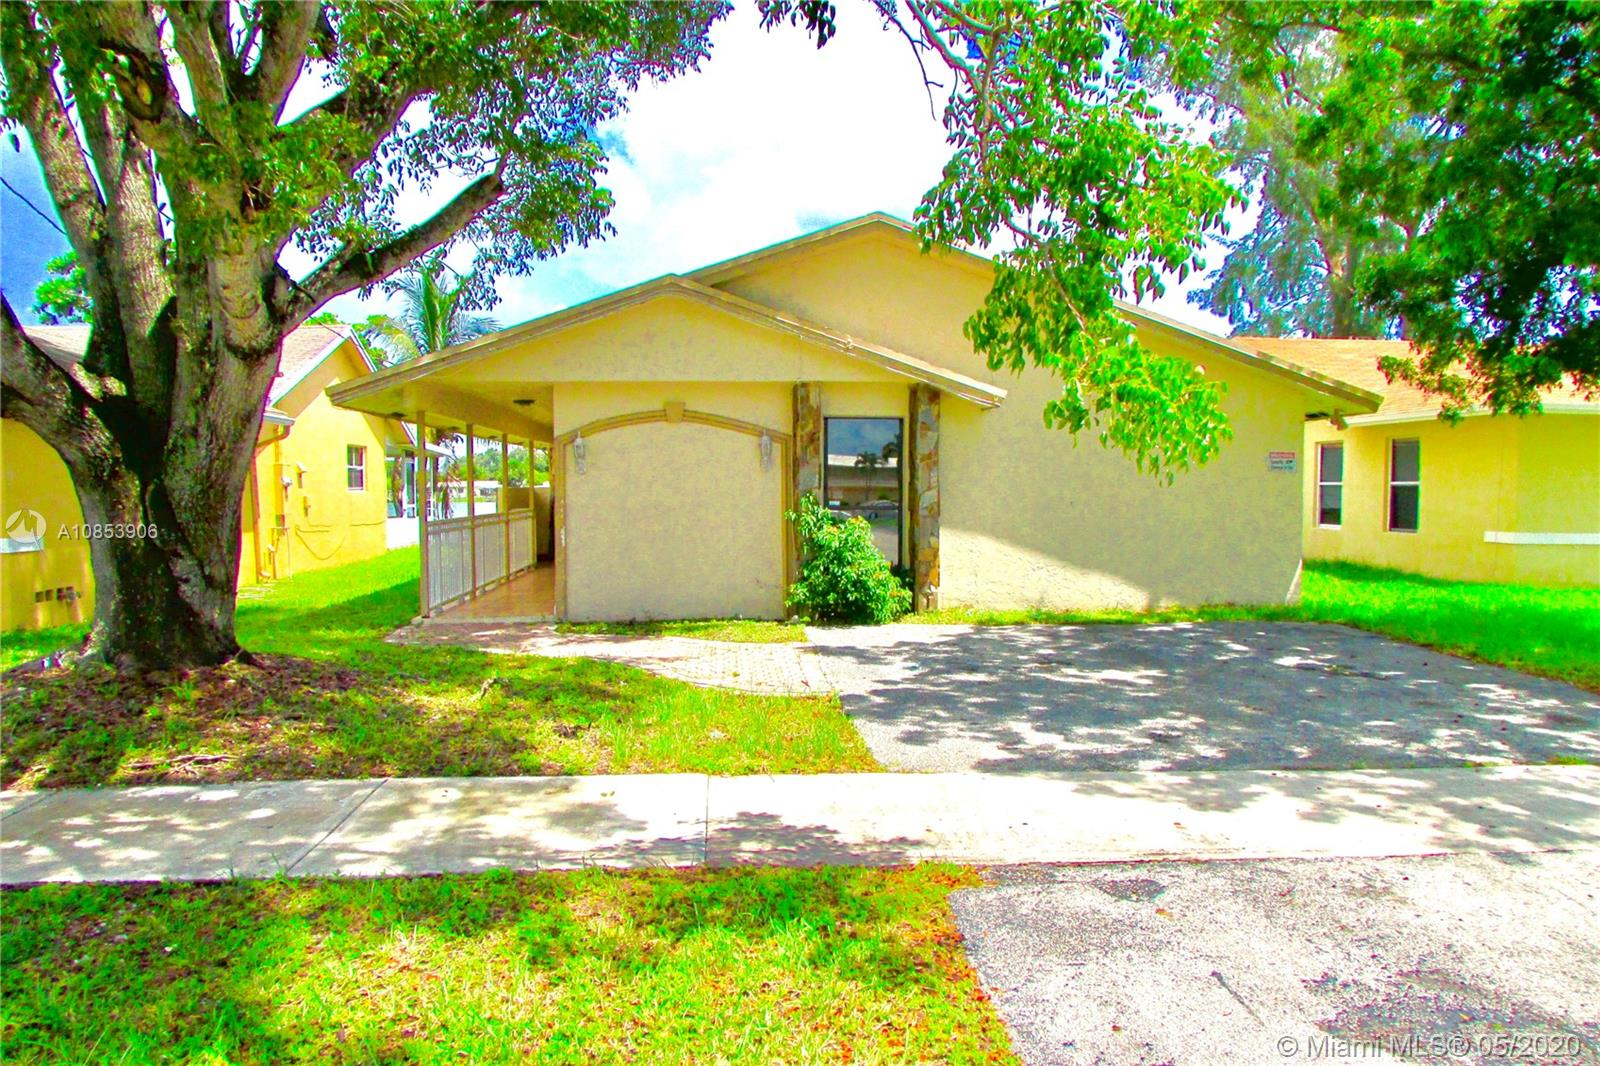 1024 SW 8th St, Hallandale Beach, Florida 33009, 3 Bedrooms Bedrooms, ,2 BathroomsBathrooms,Residential,For Sale,1024 SW 8th St,A10853906